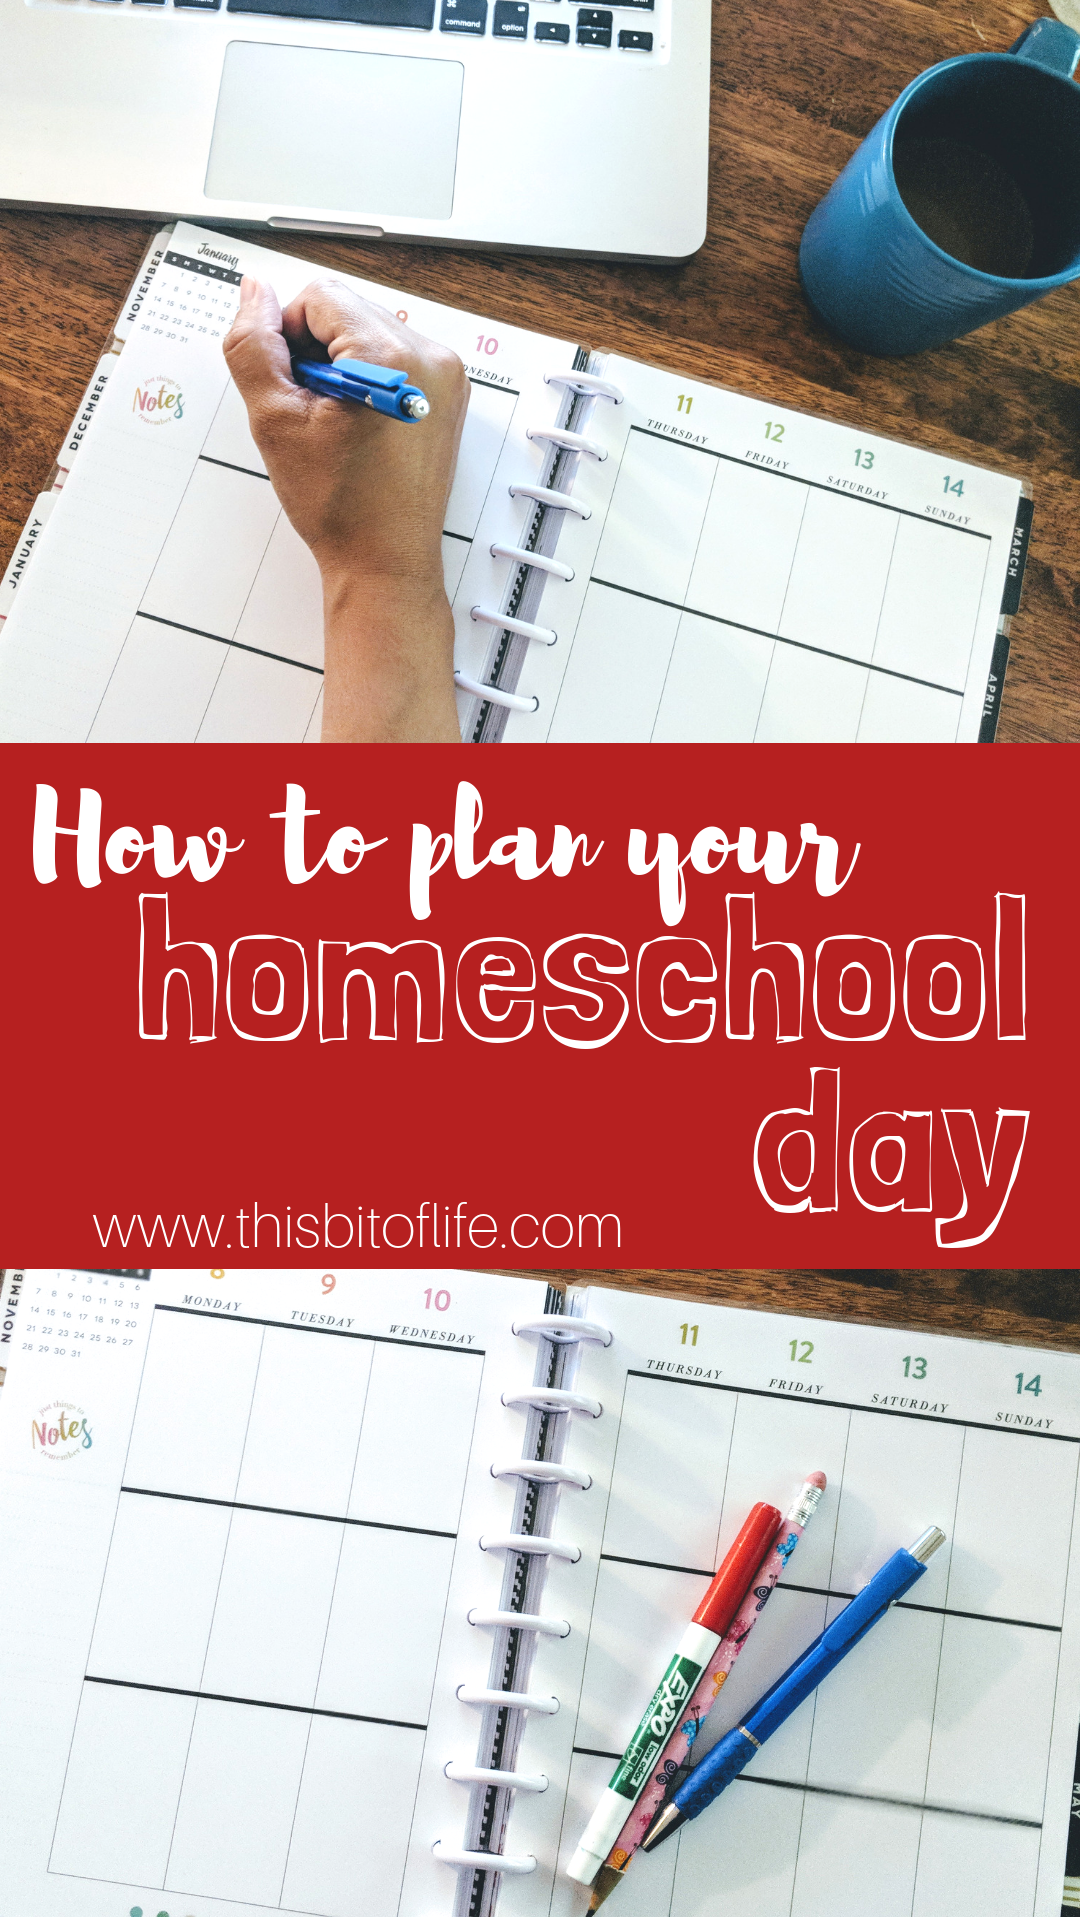 Feeling lost on how to create a homeschool plan? I will walk you through how I plan for our homeschool and how to fit all of our curriuclum in easily! #homeschoolplanning #homeschooling #planning